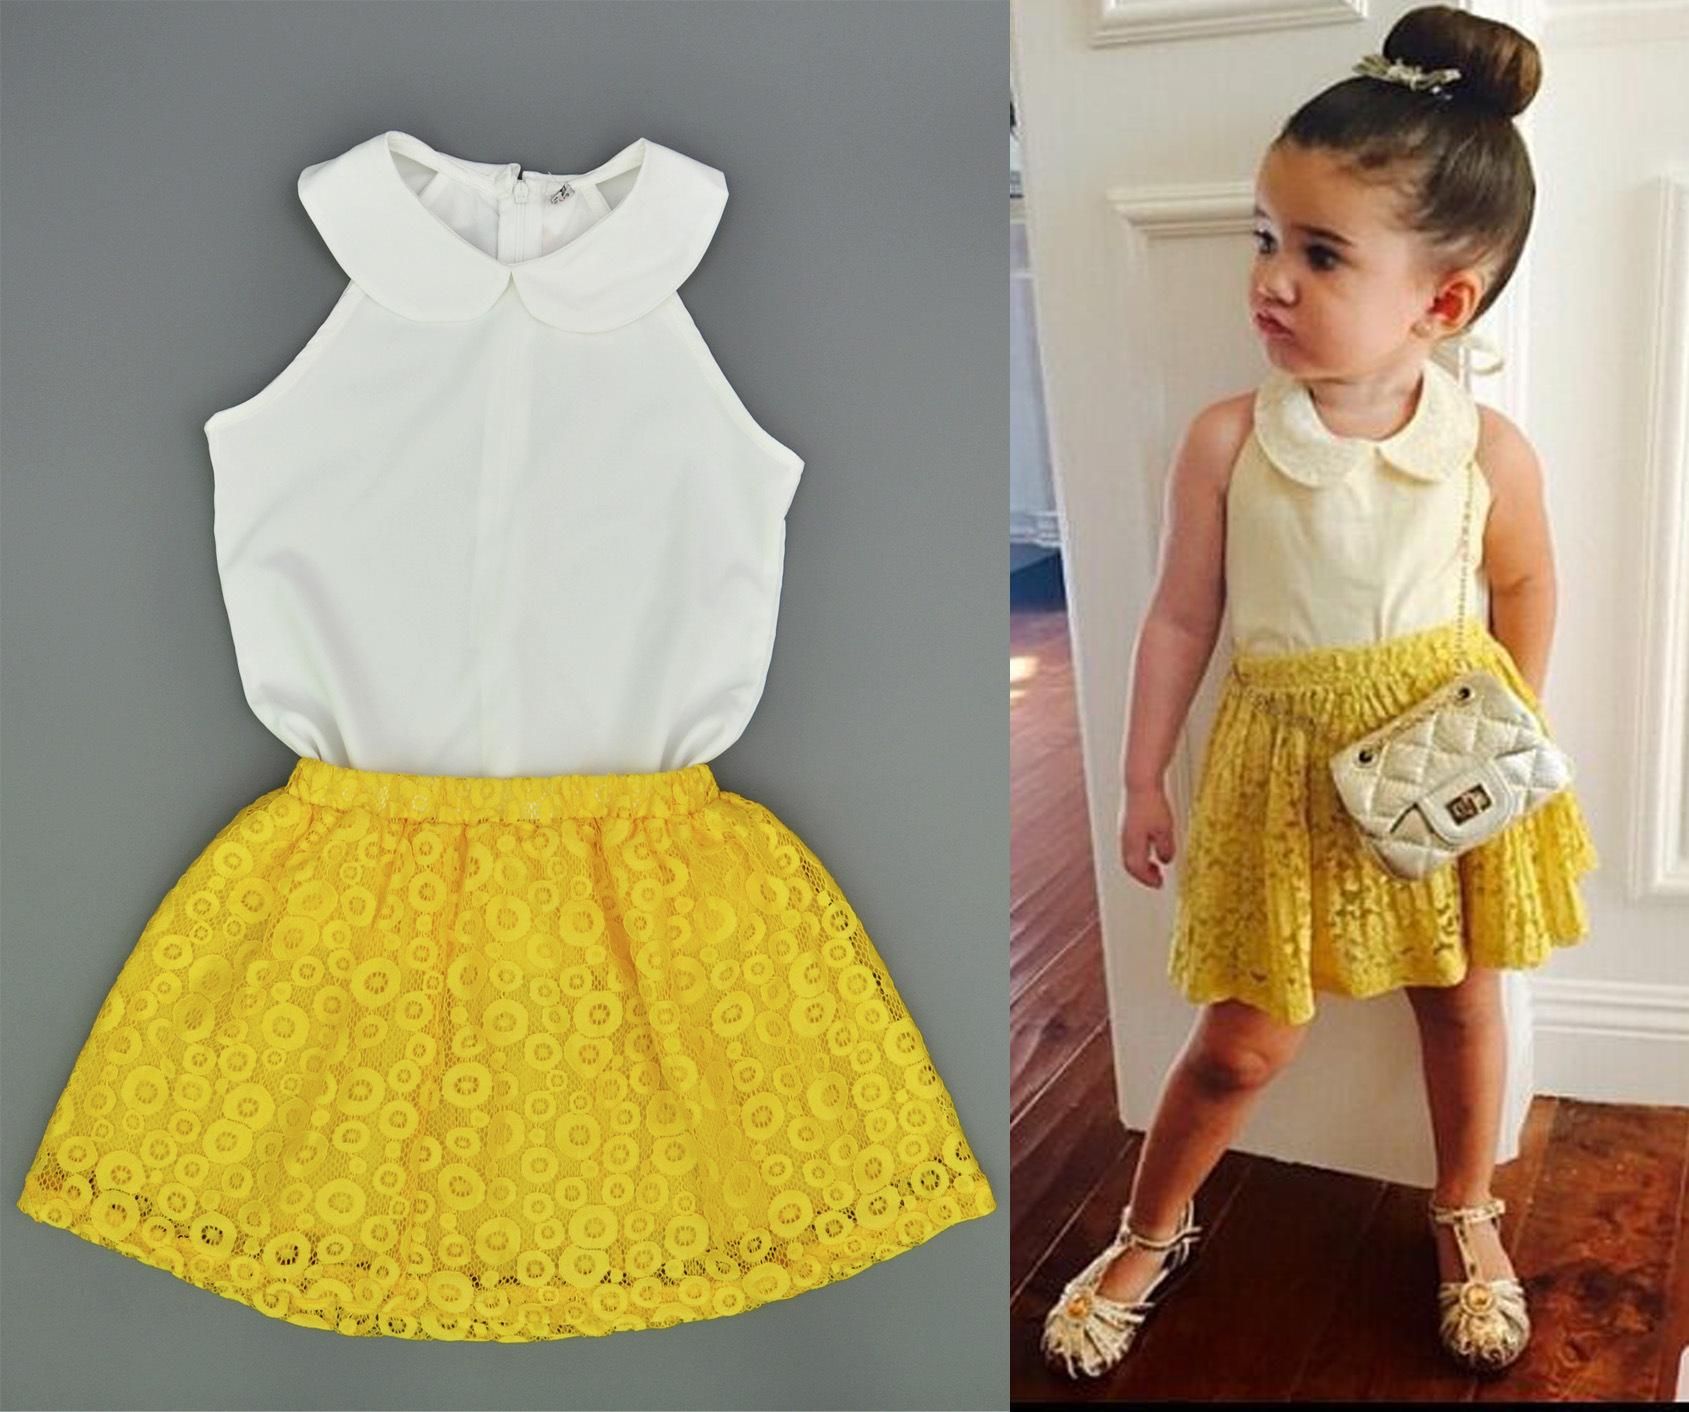 82366a788 2018 Summer Baby Girl Clothes Sets Sleeveless White Chiffon Shirts+Yellow  Lace Skirts 2pcs Kids Clothing Set Boutique Outfits